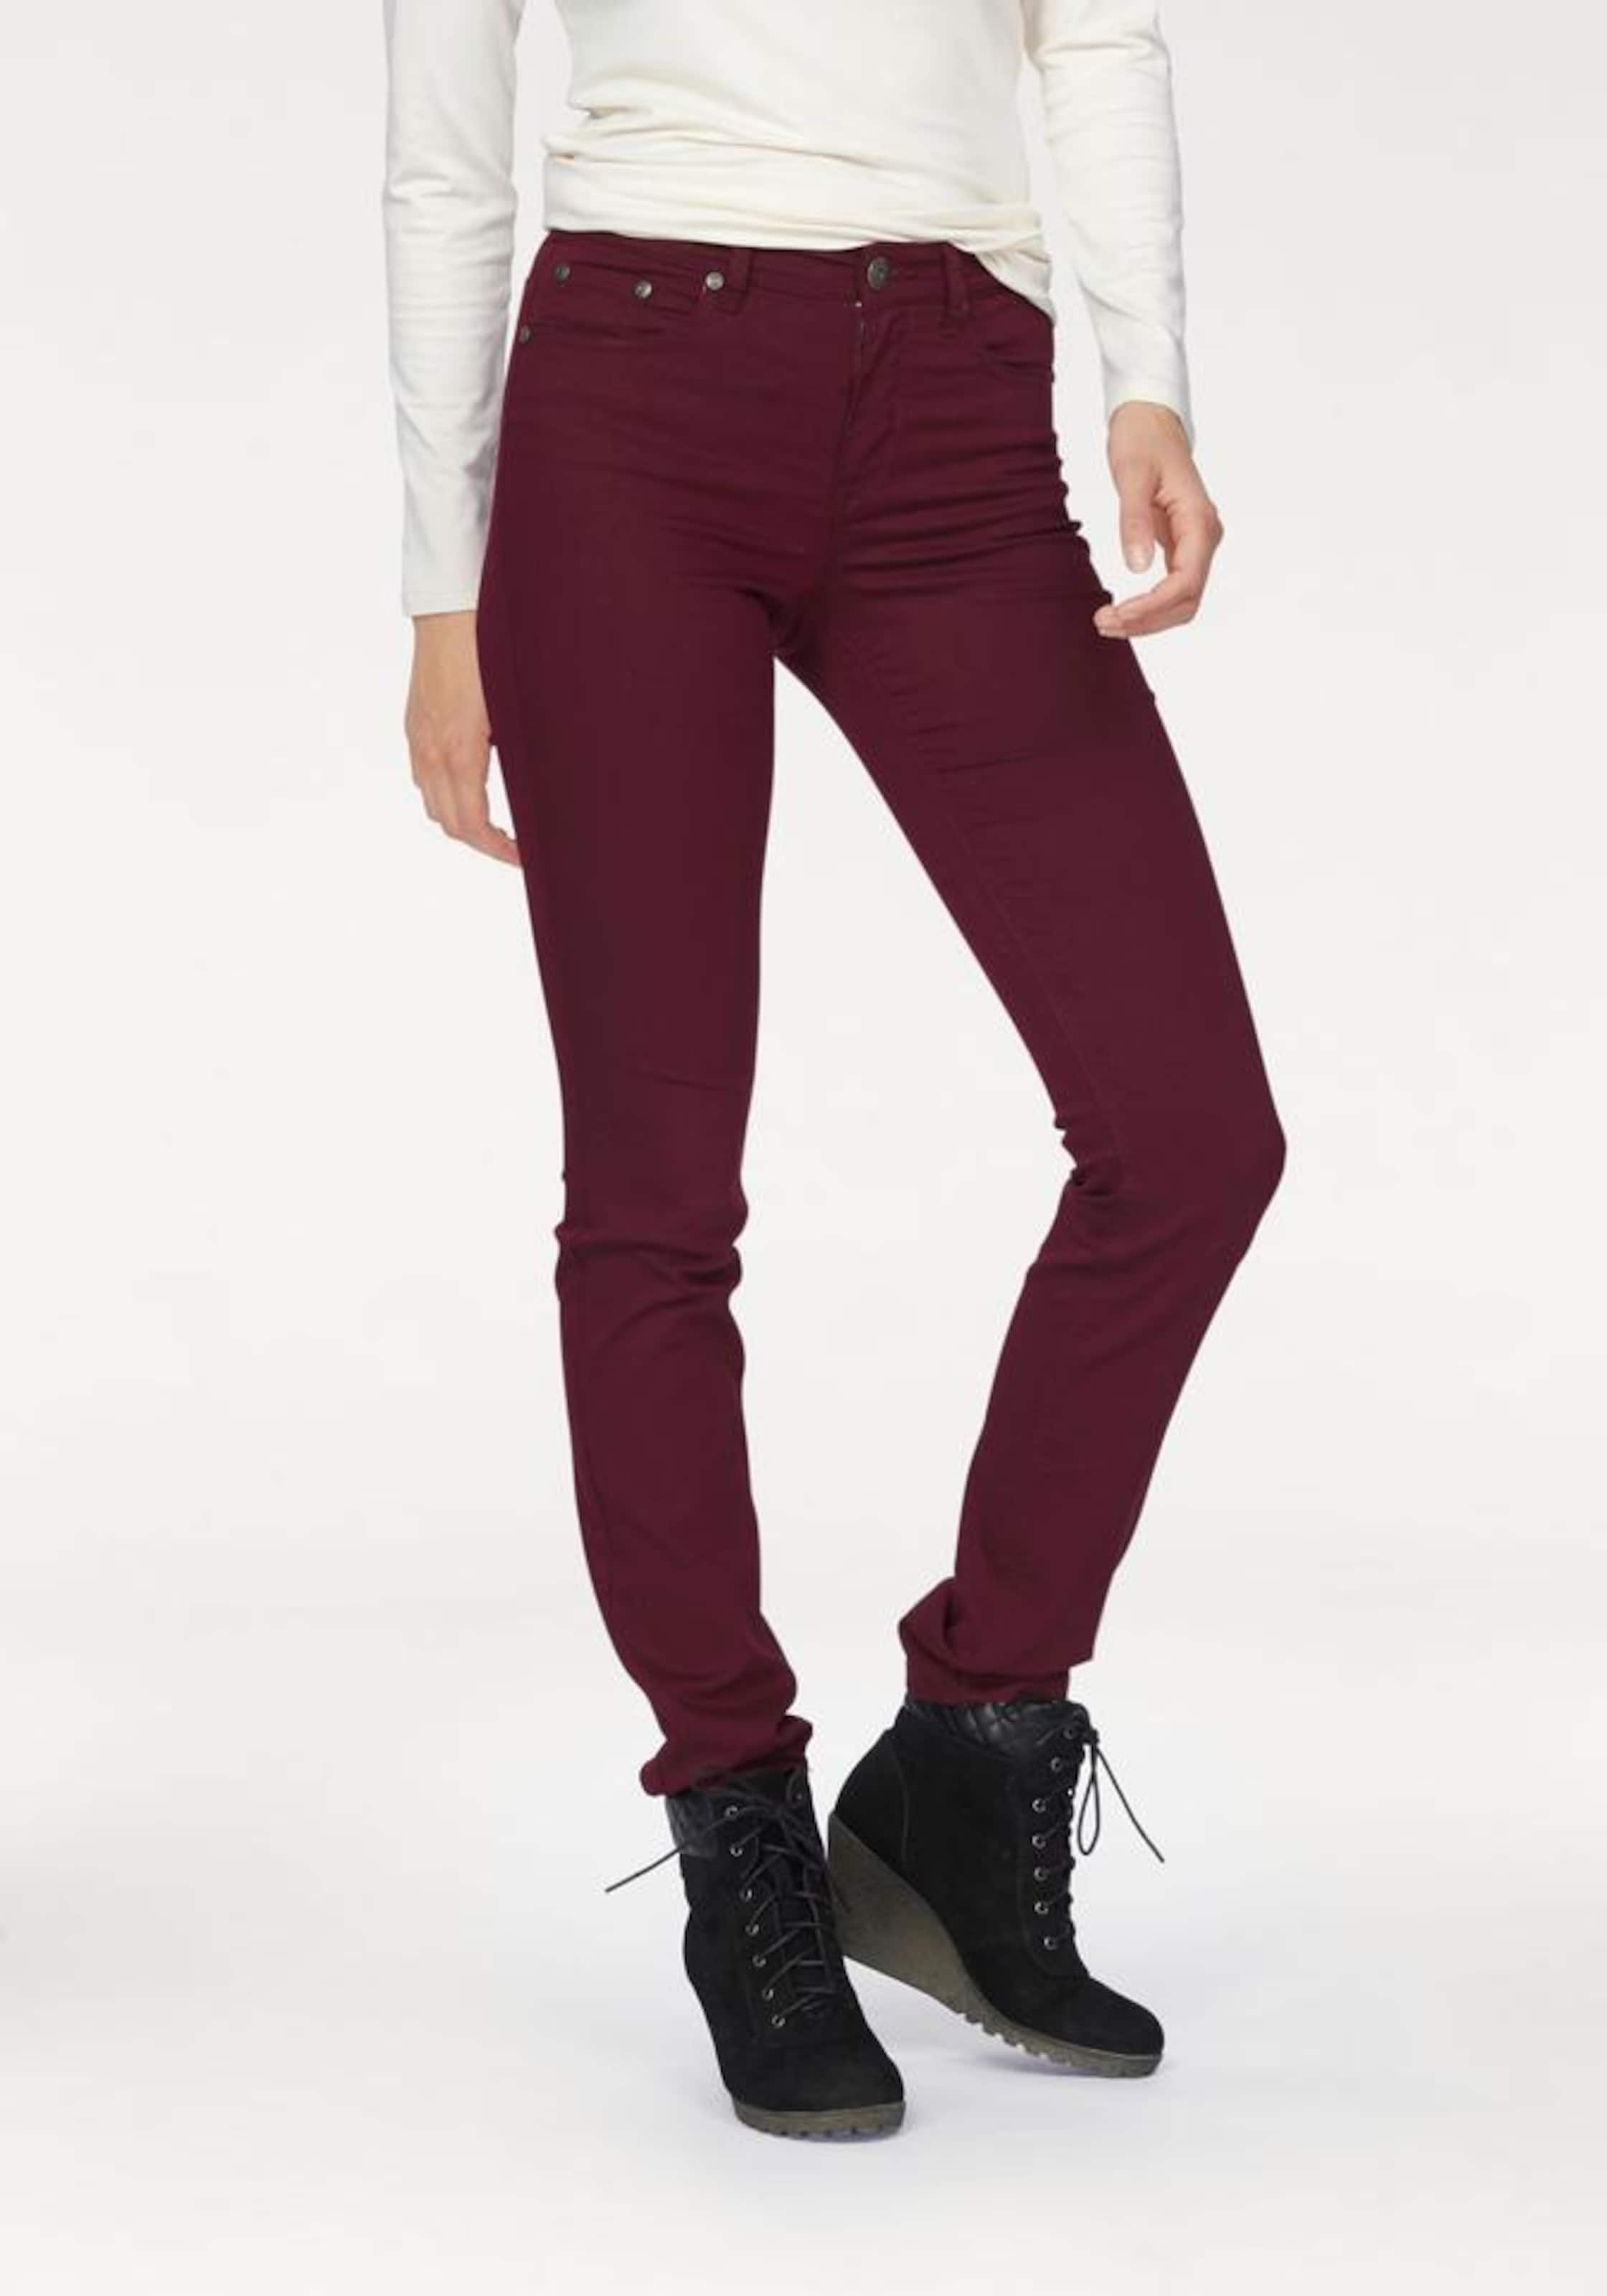 ARIZONA Jeans in bordeaux    Freizeit, schlank, schlank 6cbbe6